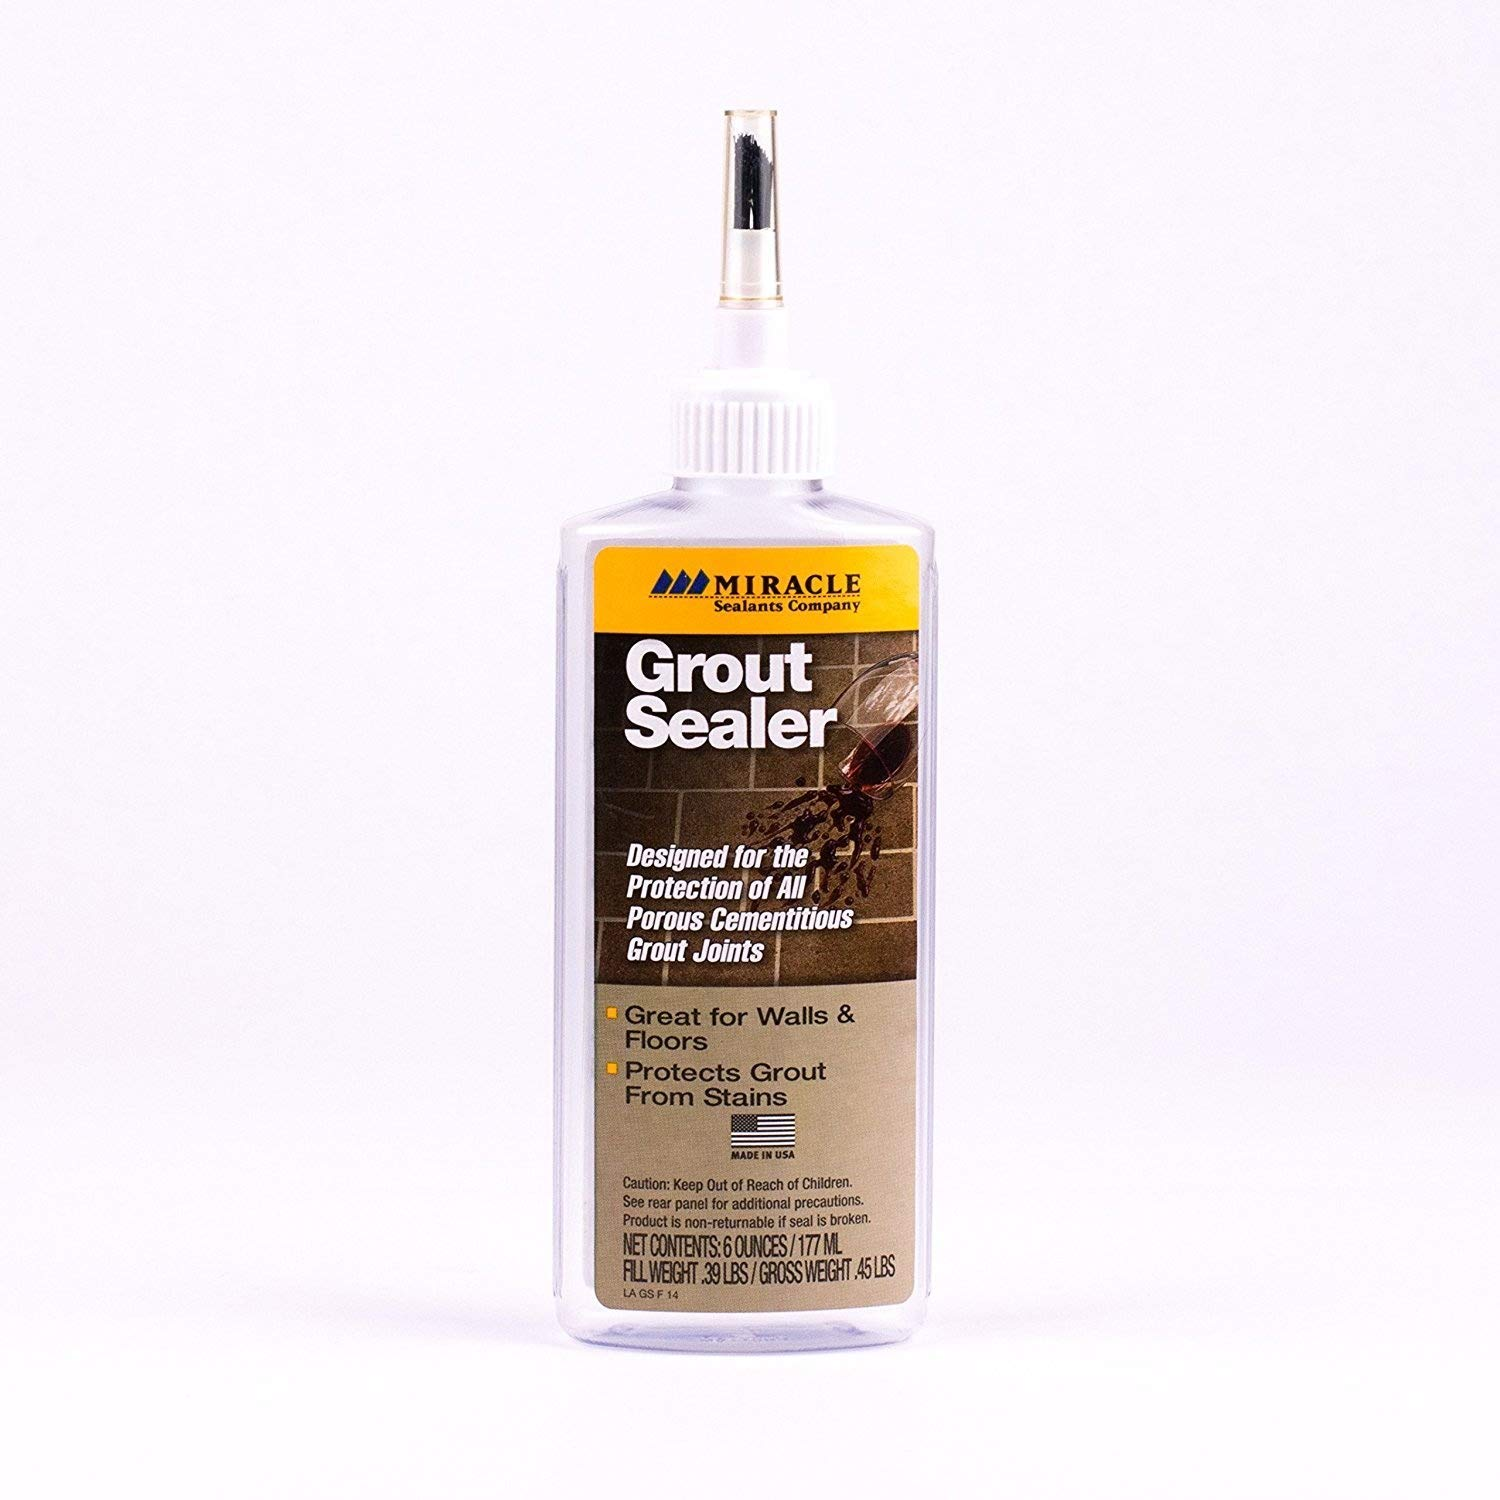 1.Miracle Sealants GRT SLR 6 Ounces Grout Sealer